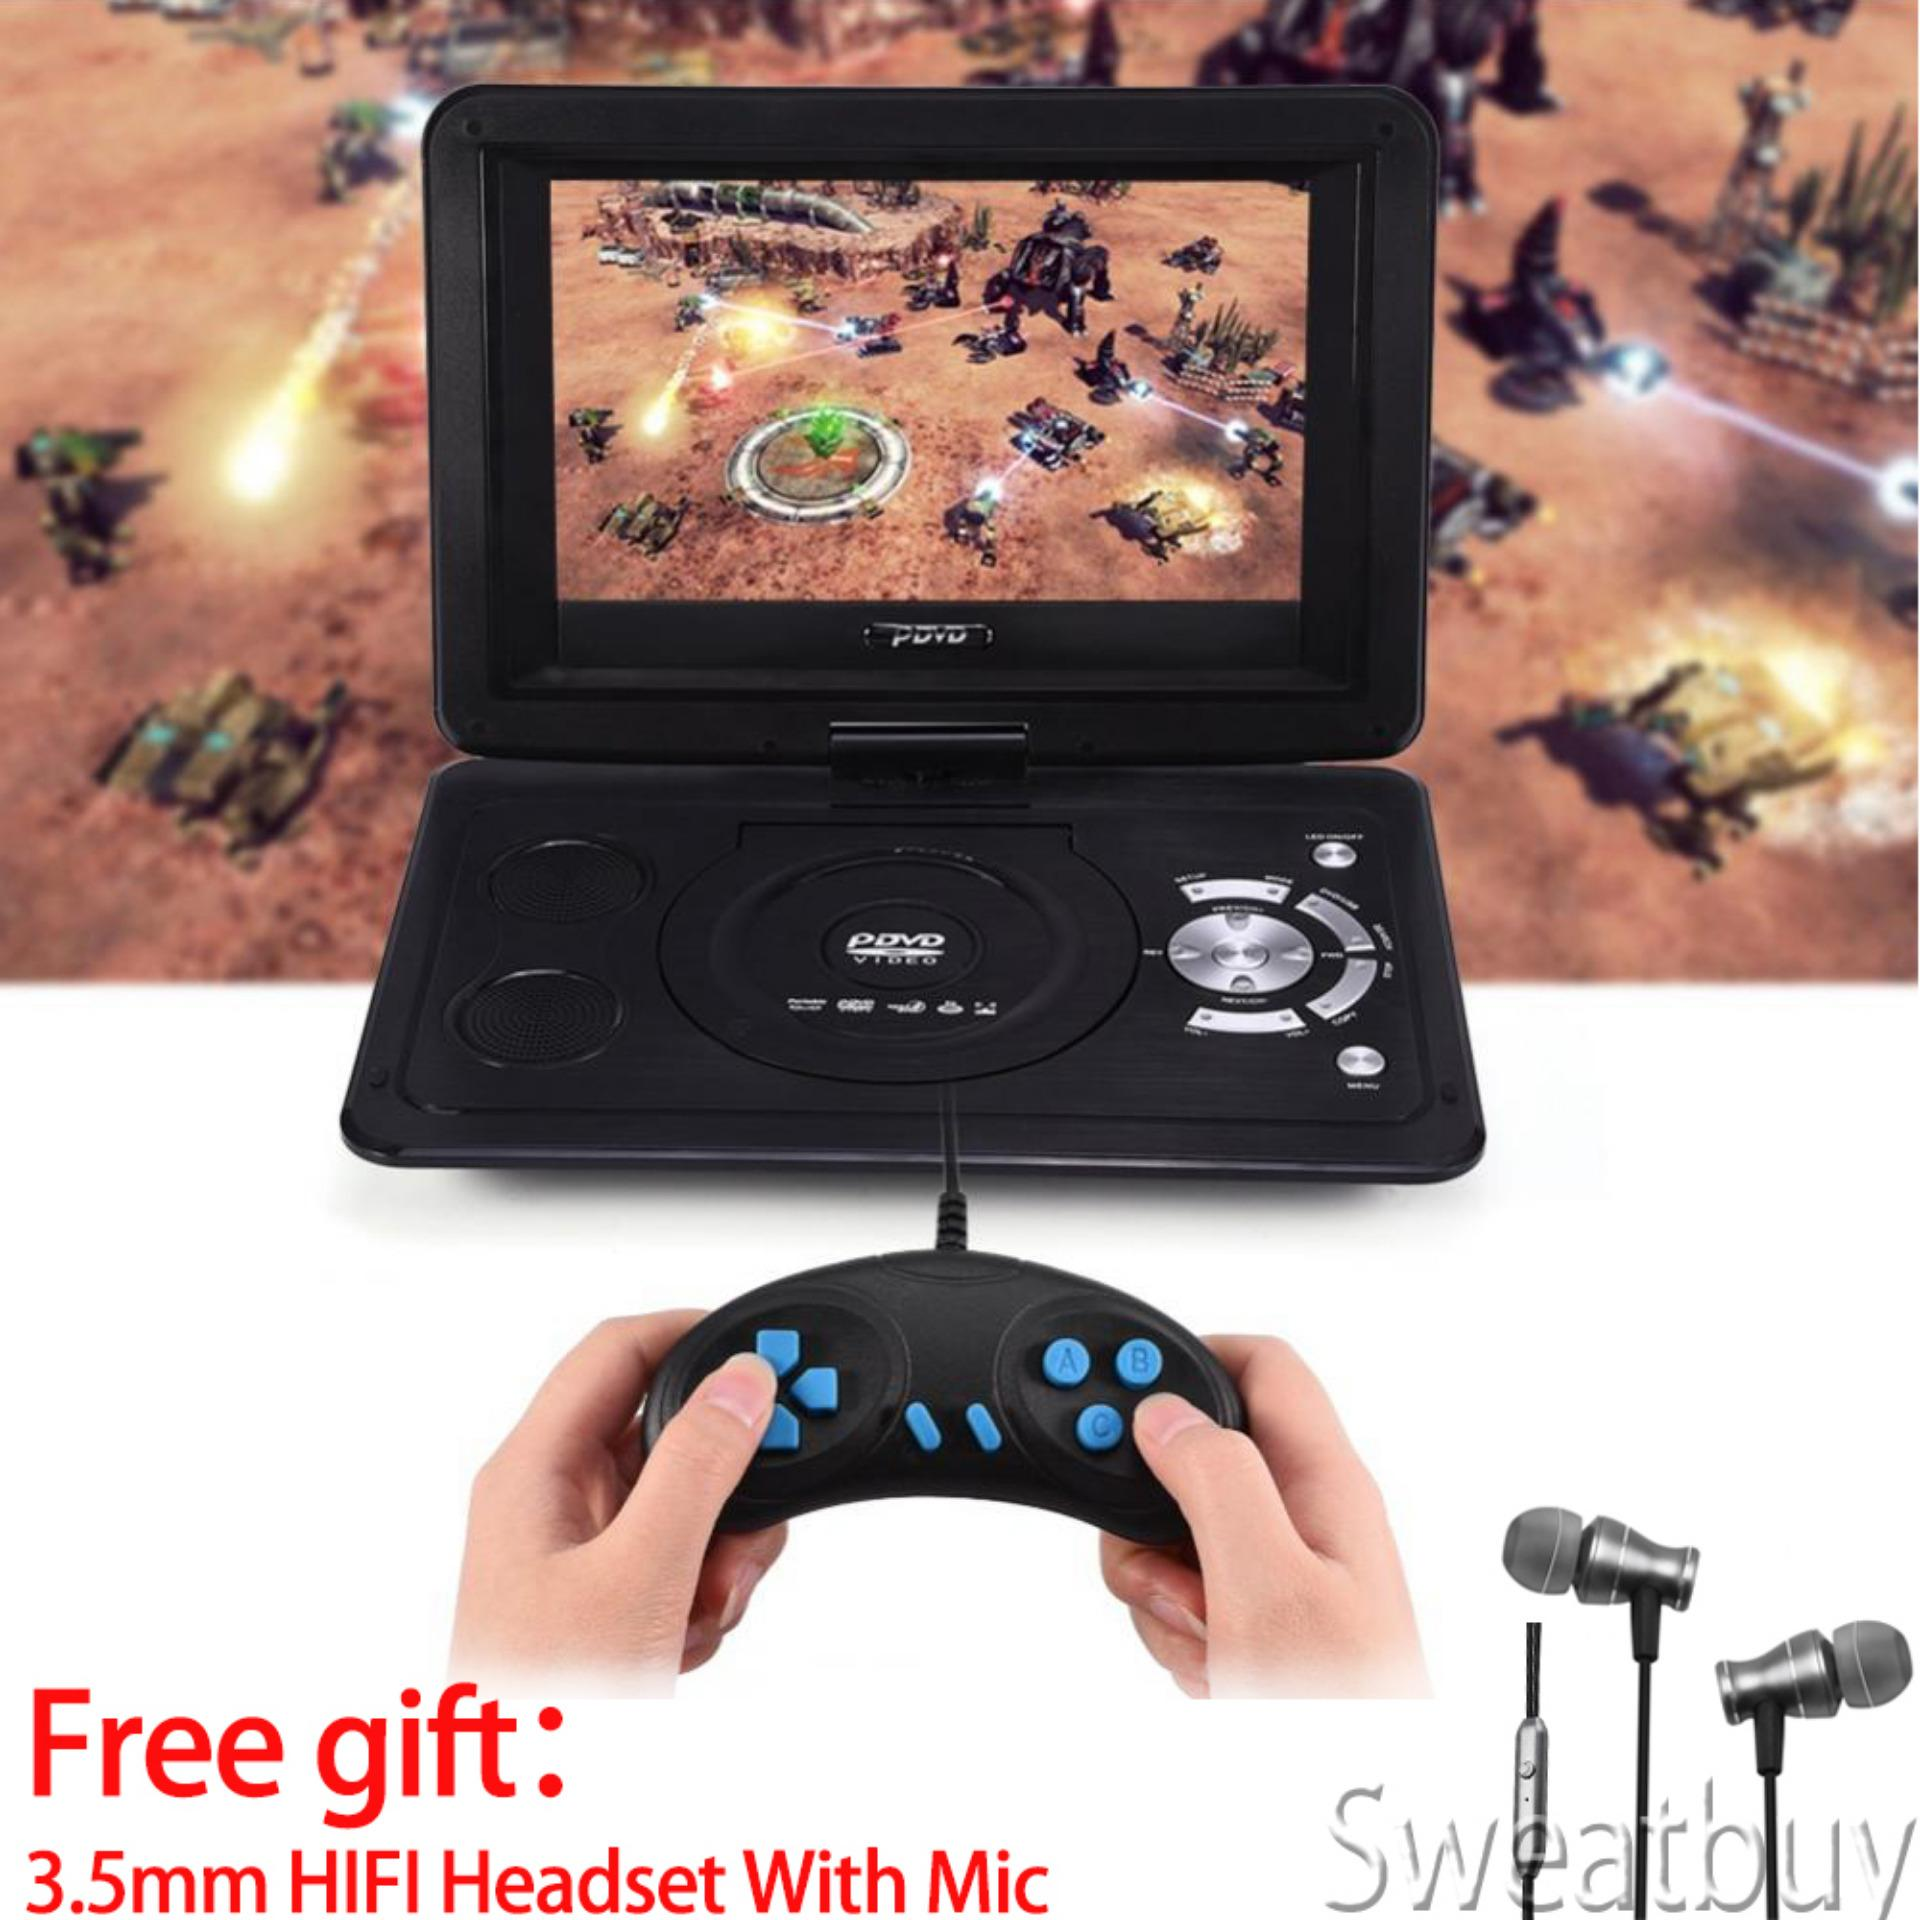 Hình ảnh [Buy 1 Get 1 Free Gift] 13.9inch HD TV Portable DVD Player 800*480 Resolution 16:9 LCD Screen 110-240V US Plug - intl